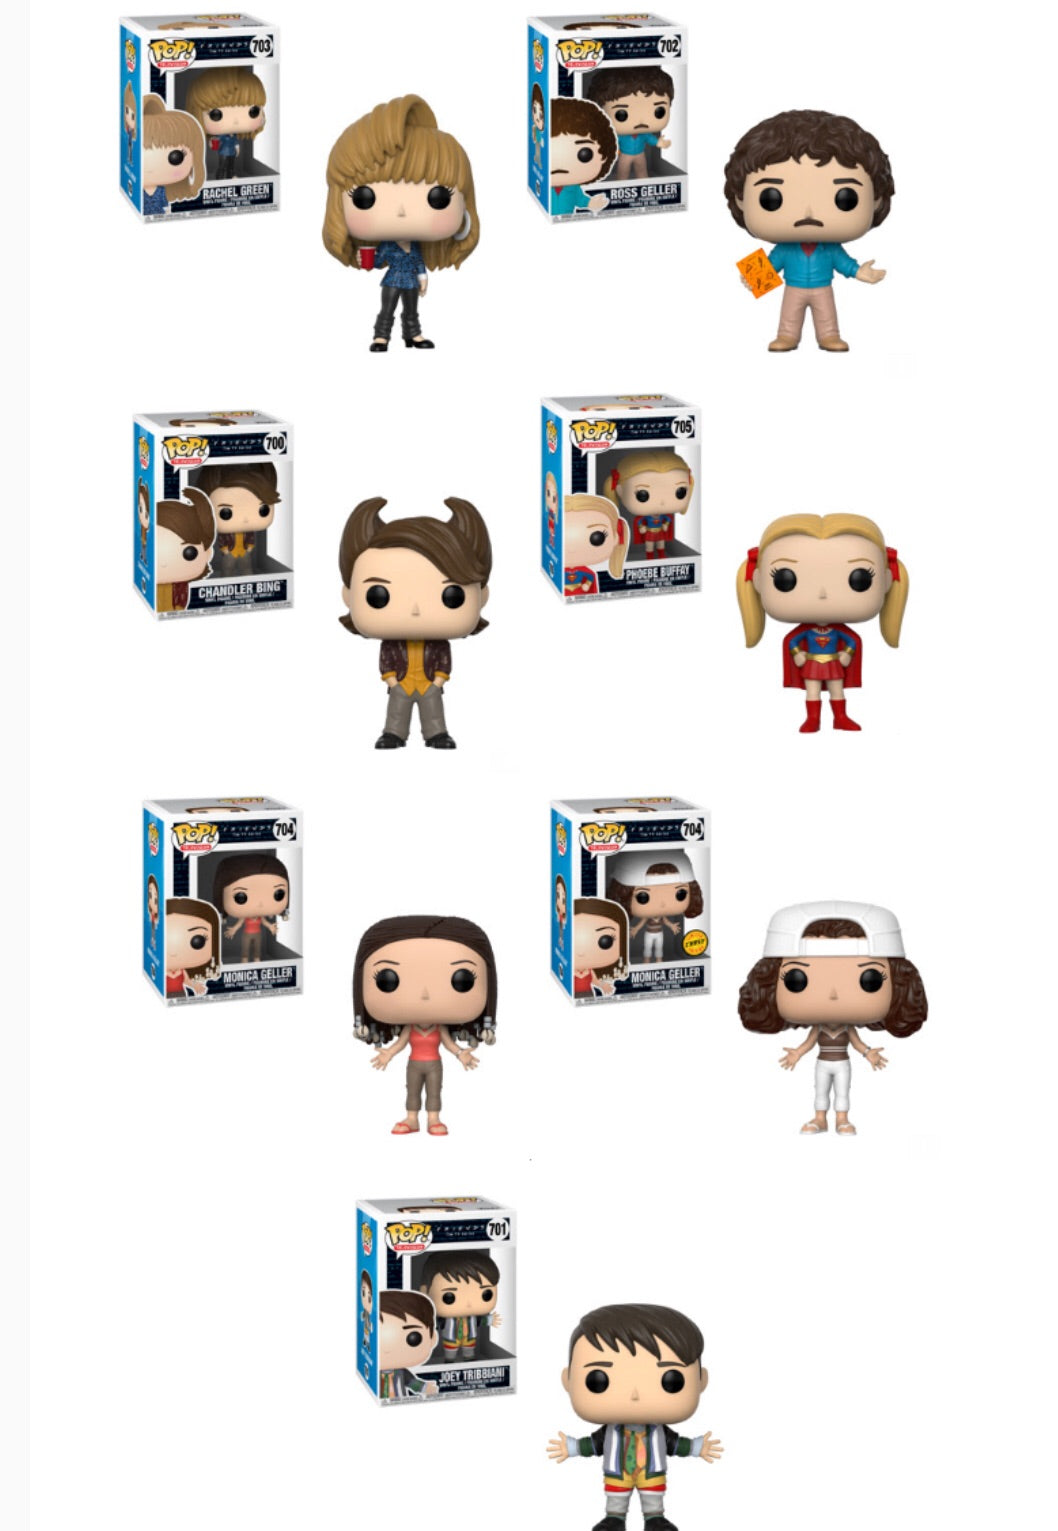 Friends Funko Pop! Complete Set of 7 CHASE Included